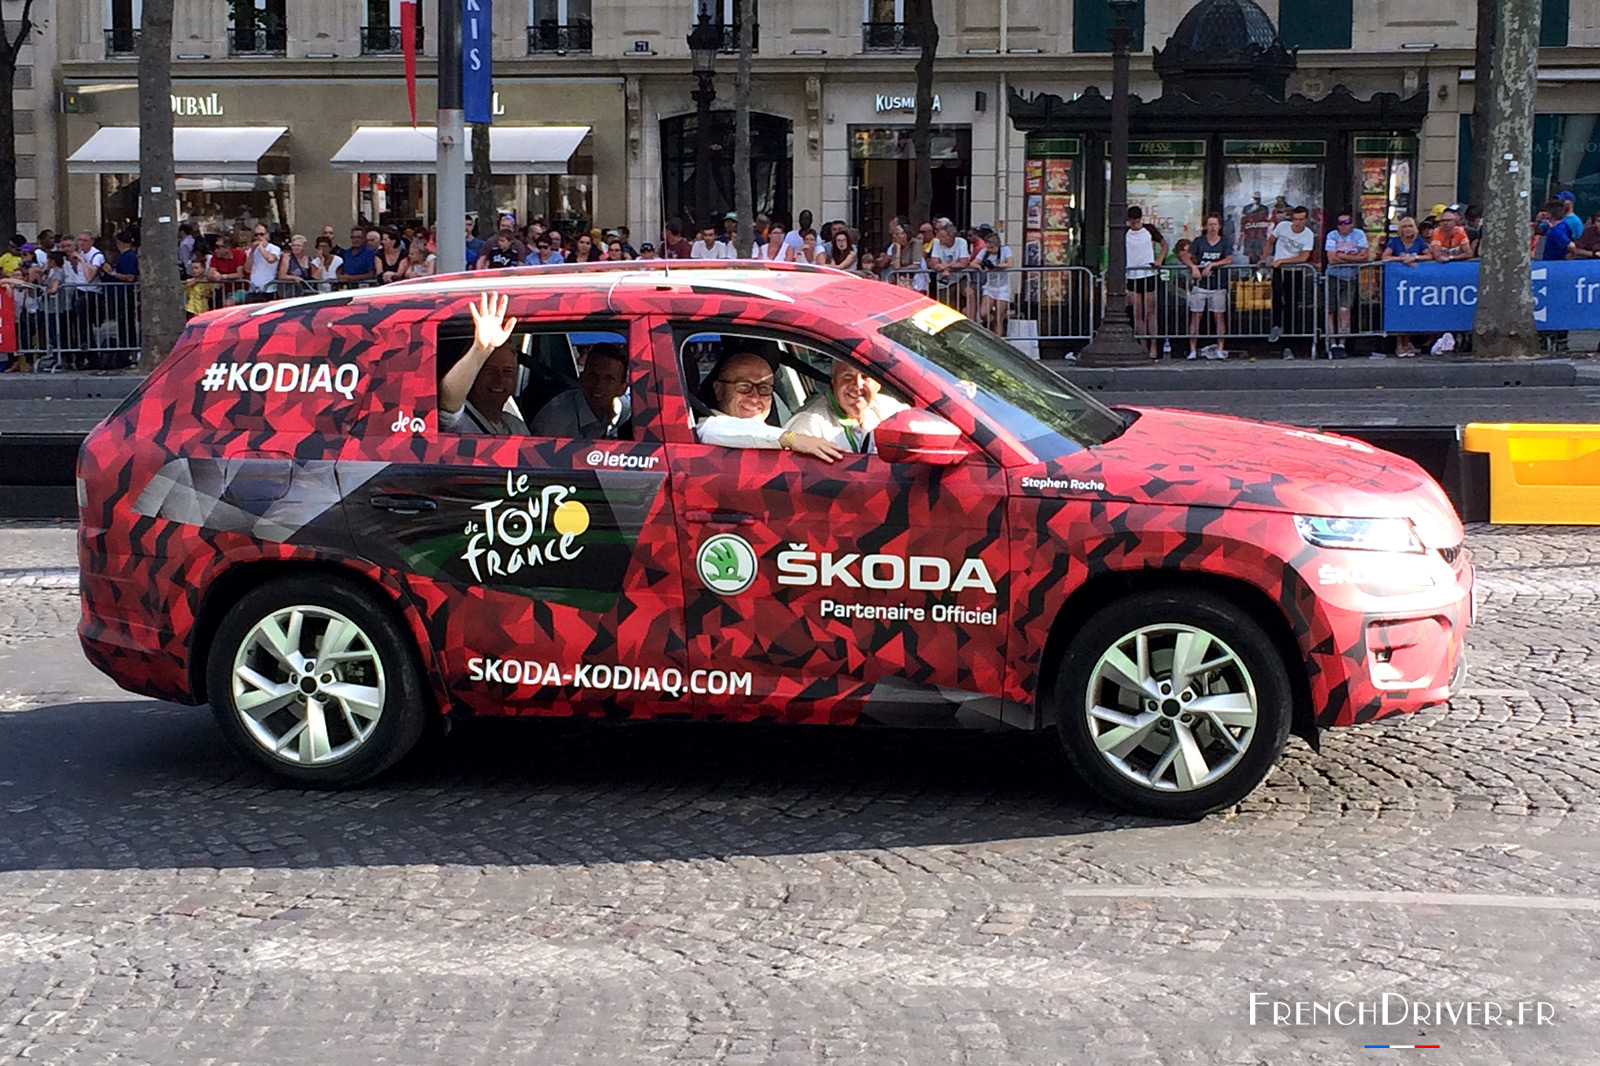 le nouveau skoda kodiaq paris lors du tour de france 2016 french driver. Black Bedroom Furniture Sets. Home Design Ideas